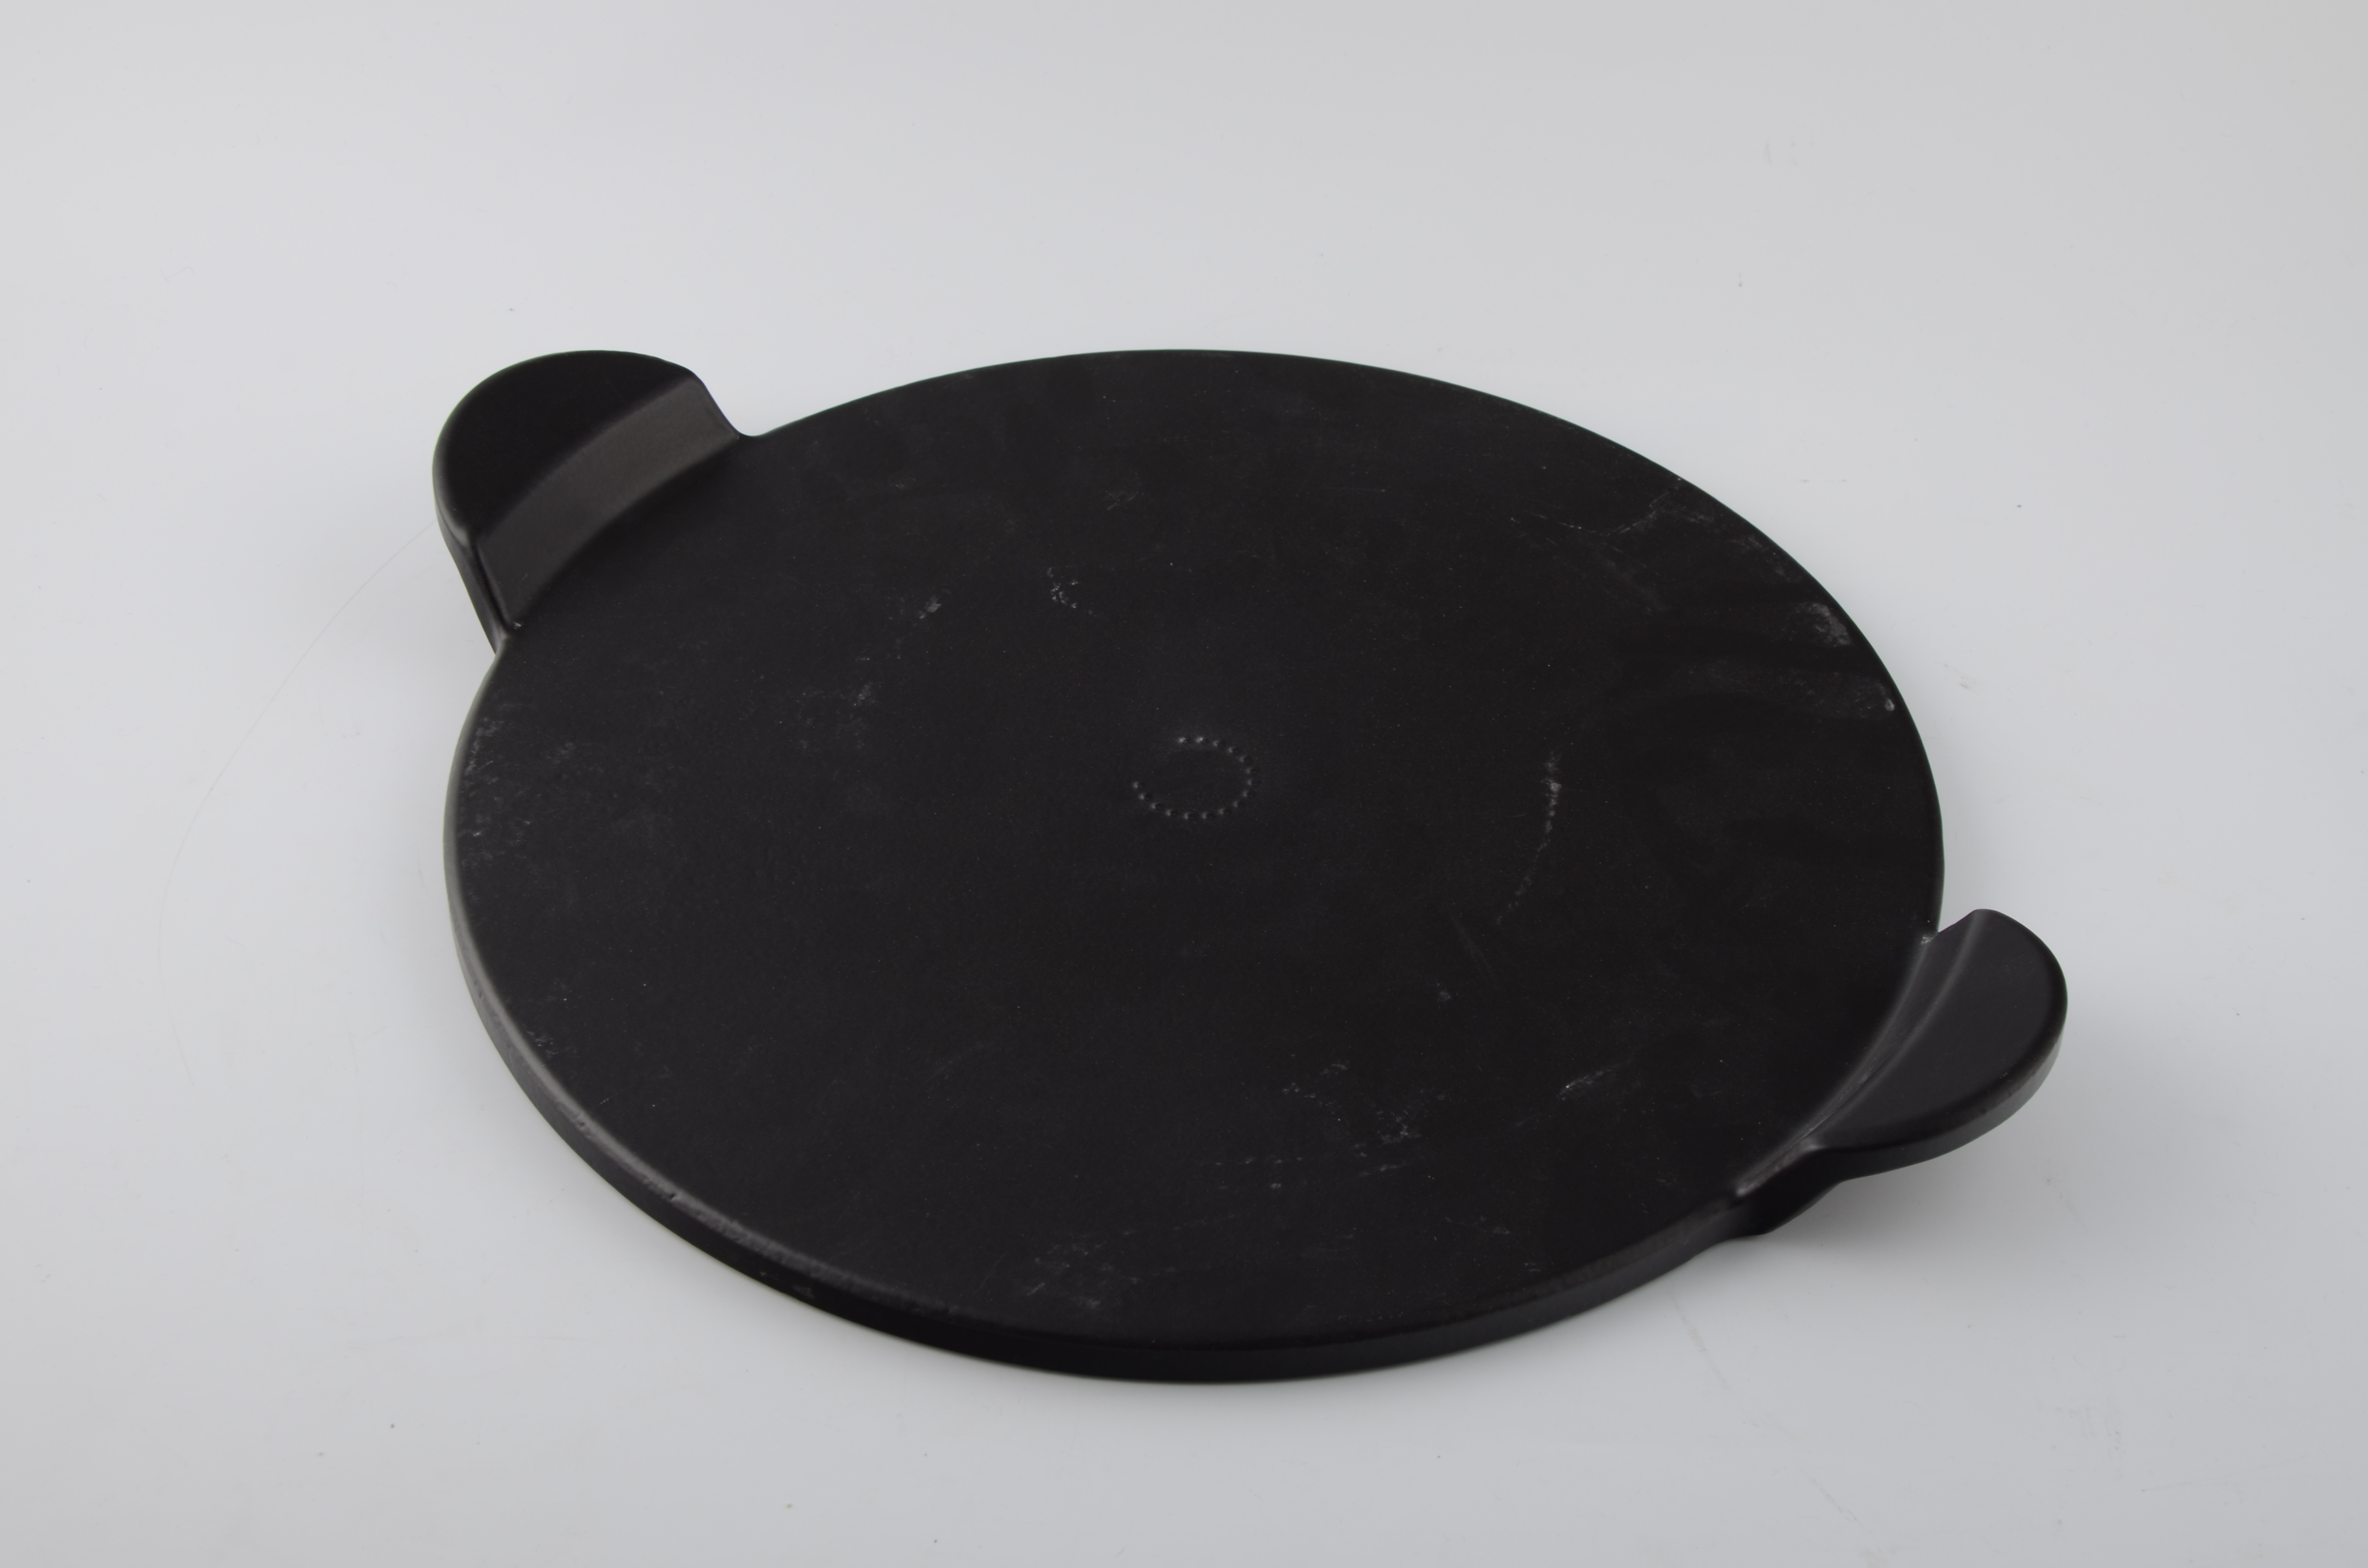 Ceramic Stones For Bbq : Ynni universal ceramic quot pizza stone with handles bbq